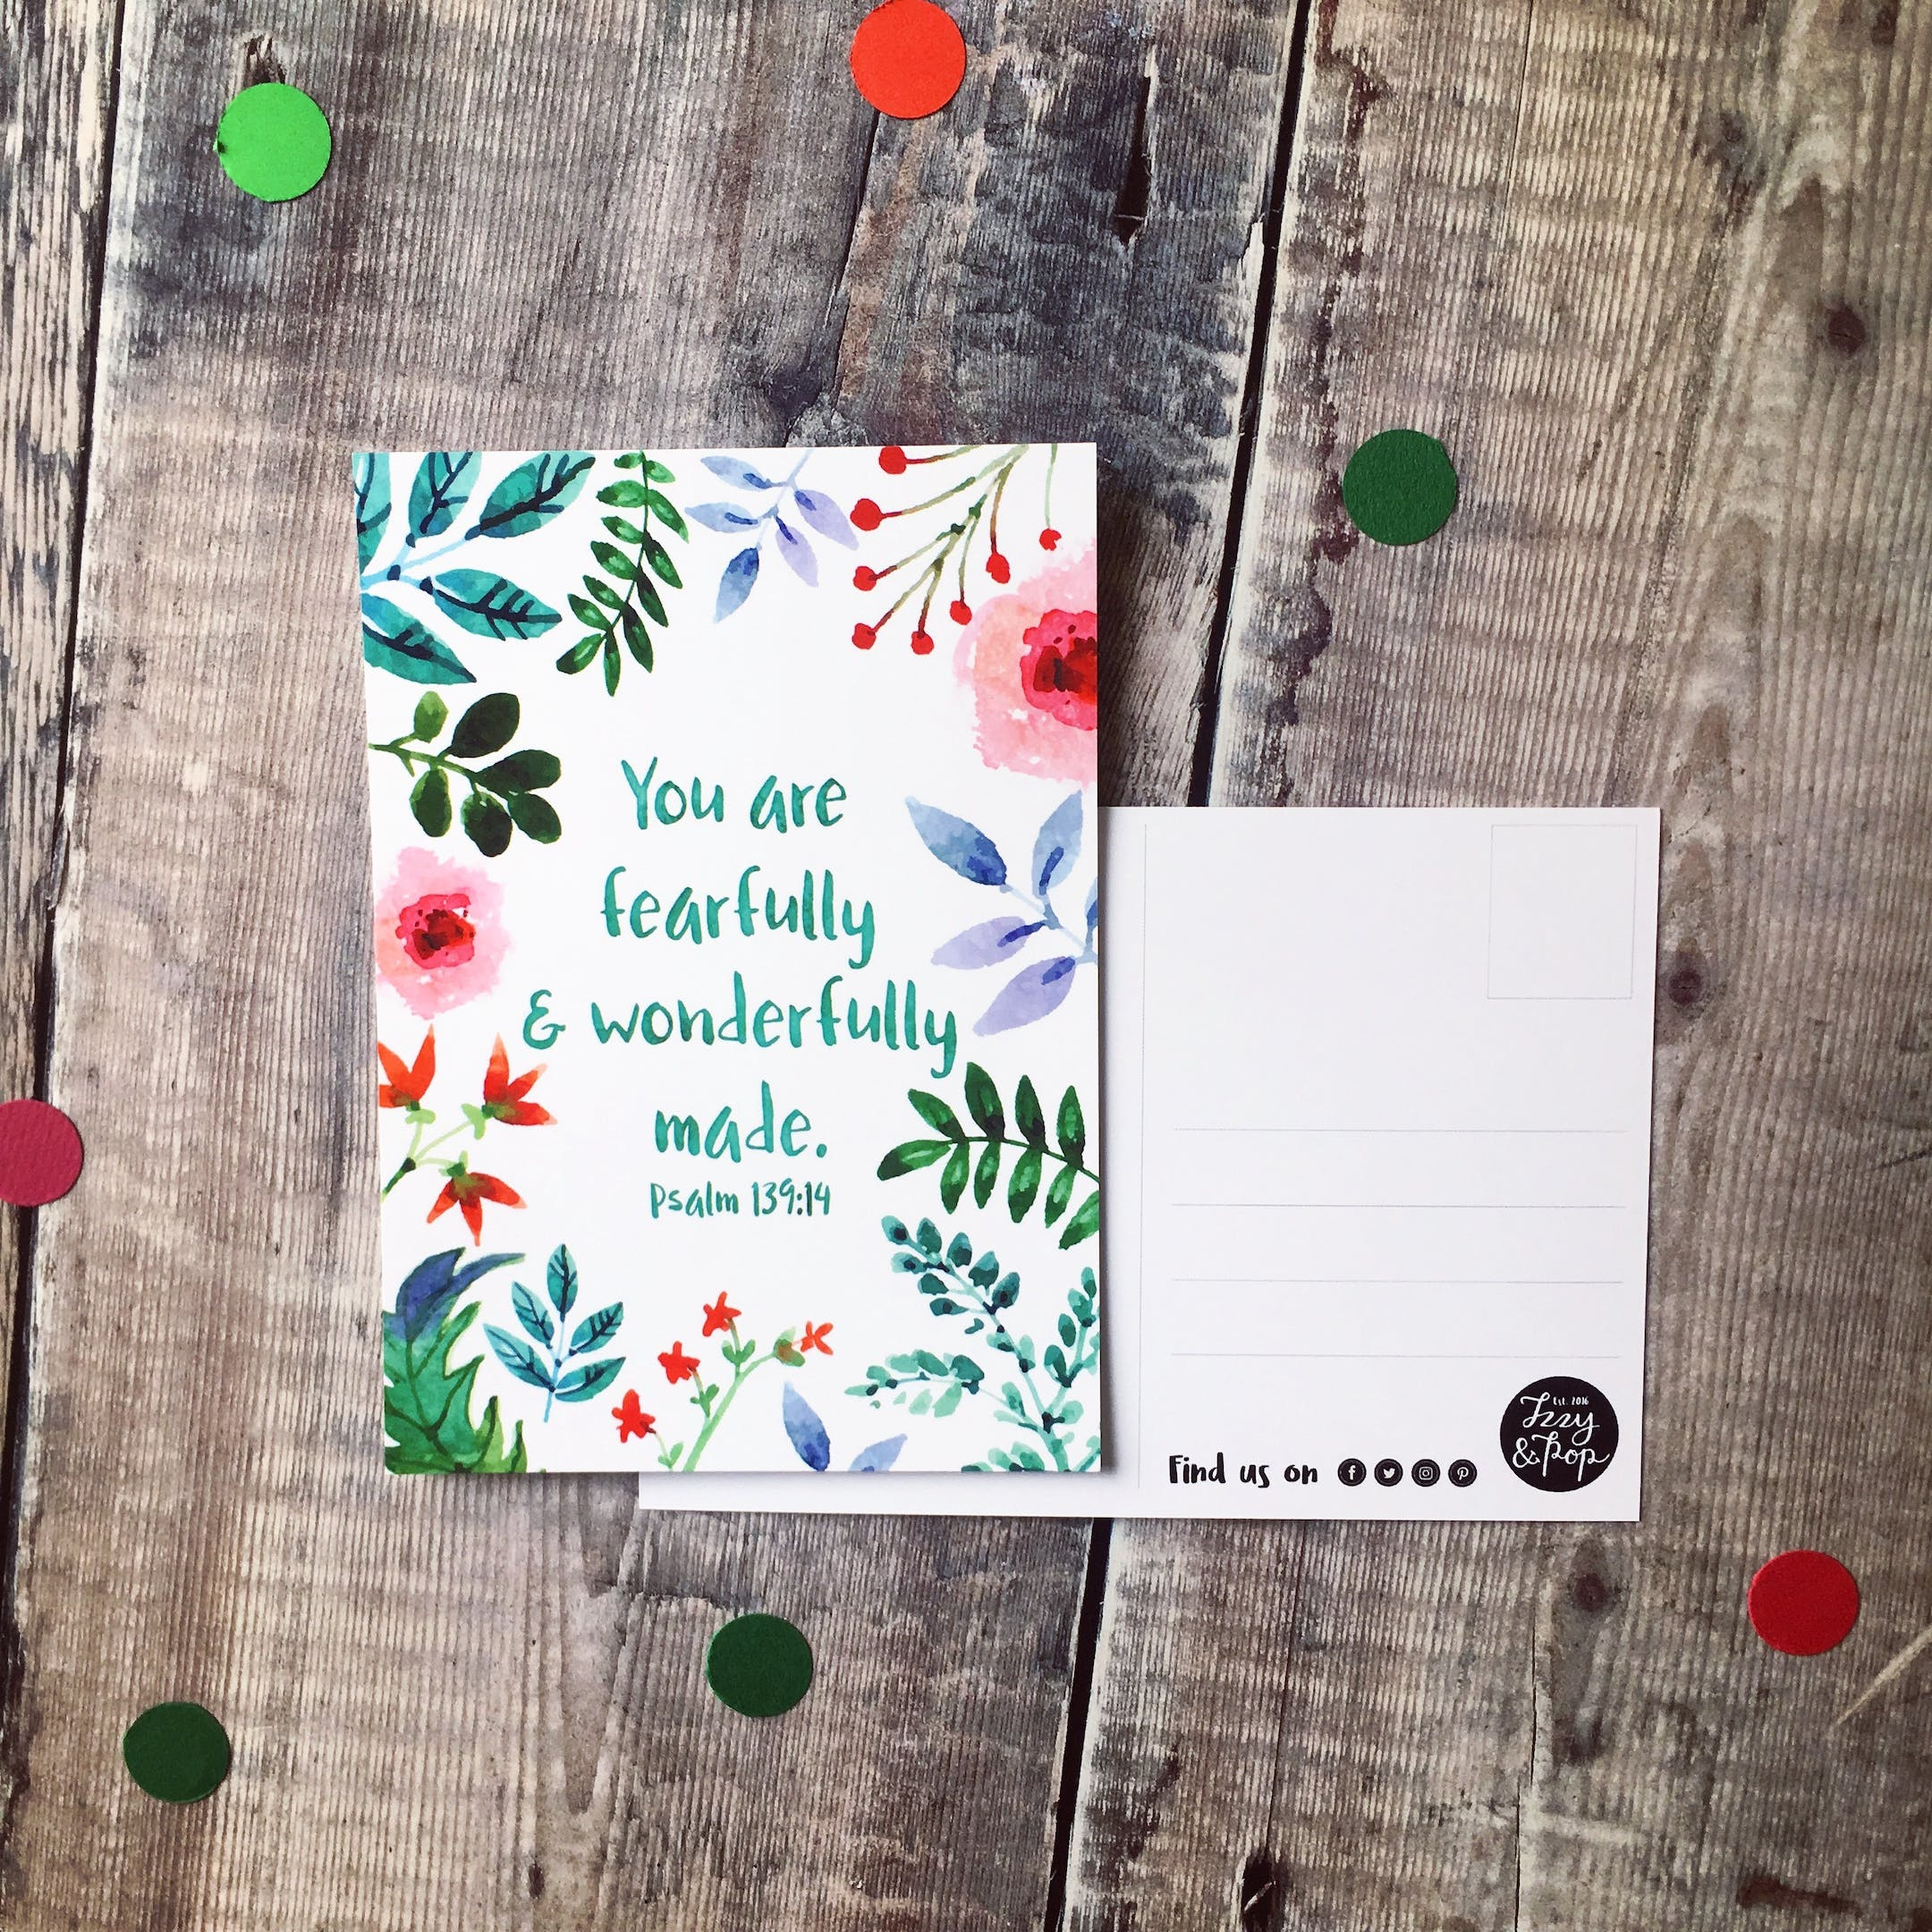 You Are Fearfully And Wonderfully Made Encouragement Postcard - Izzy and Pop